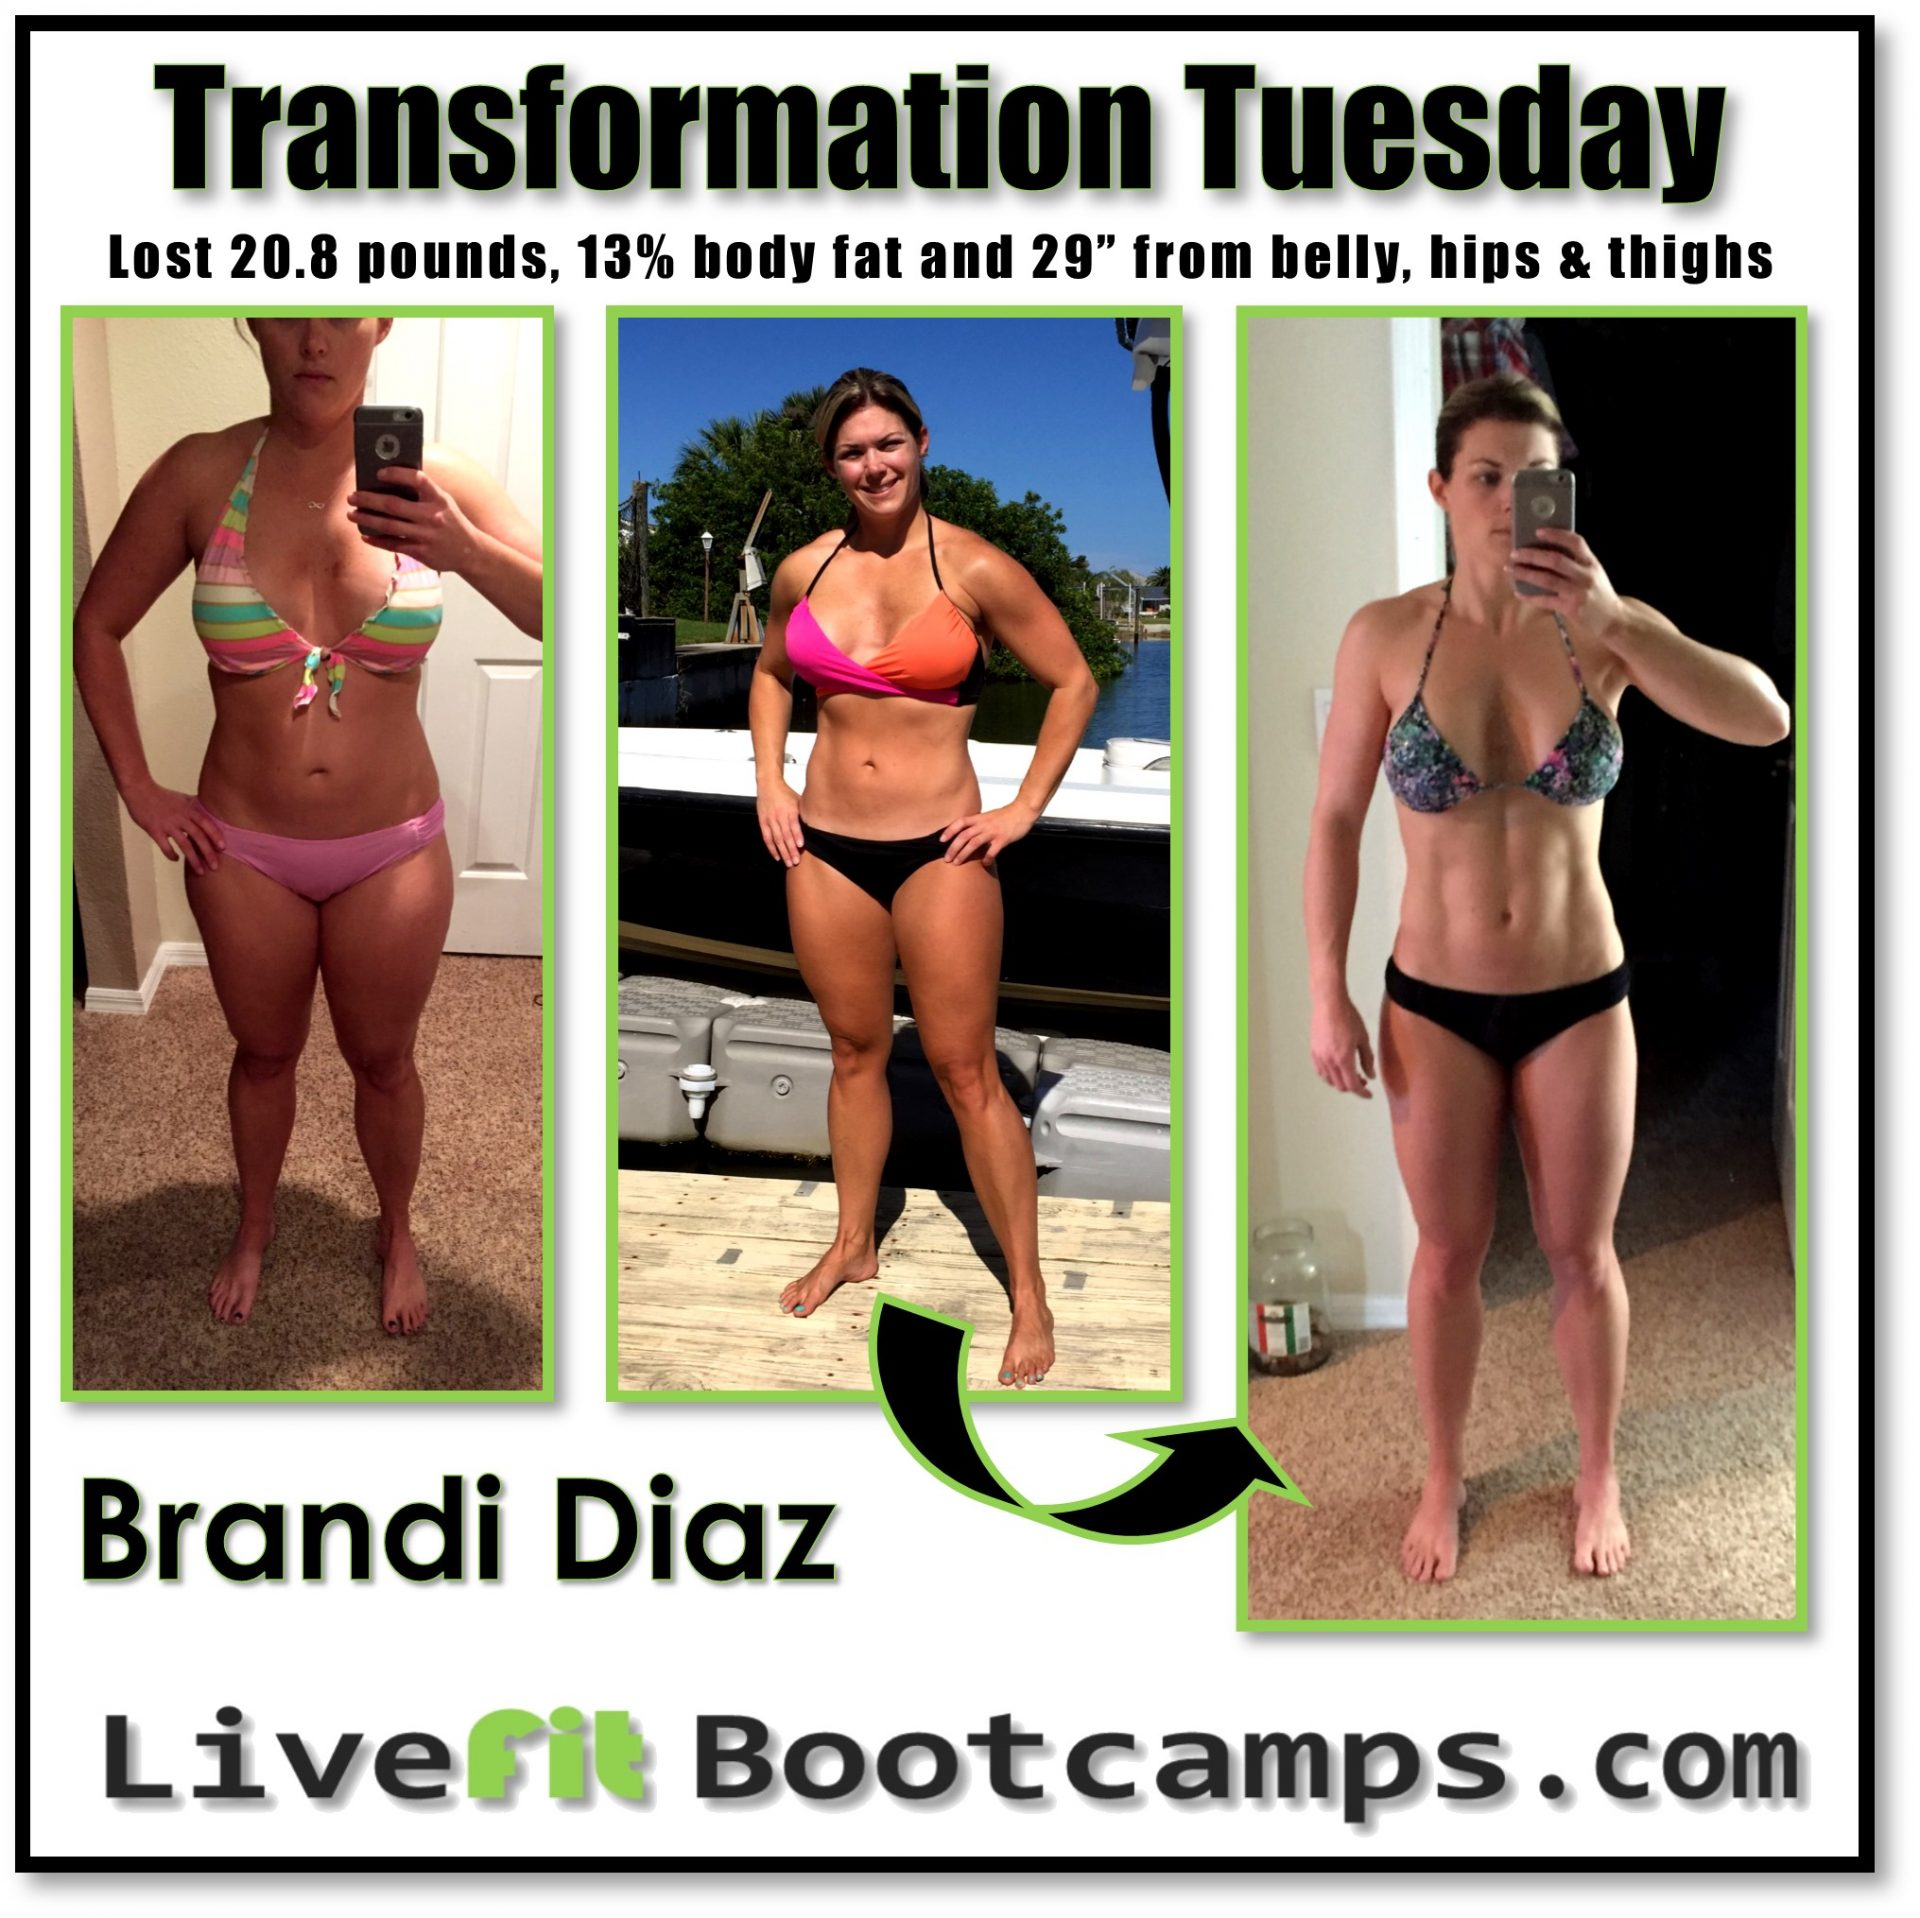 Brandi transformation tuesday success story mom before after picture